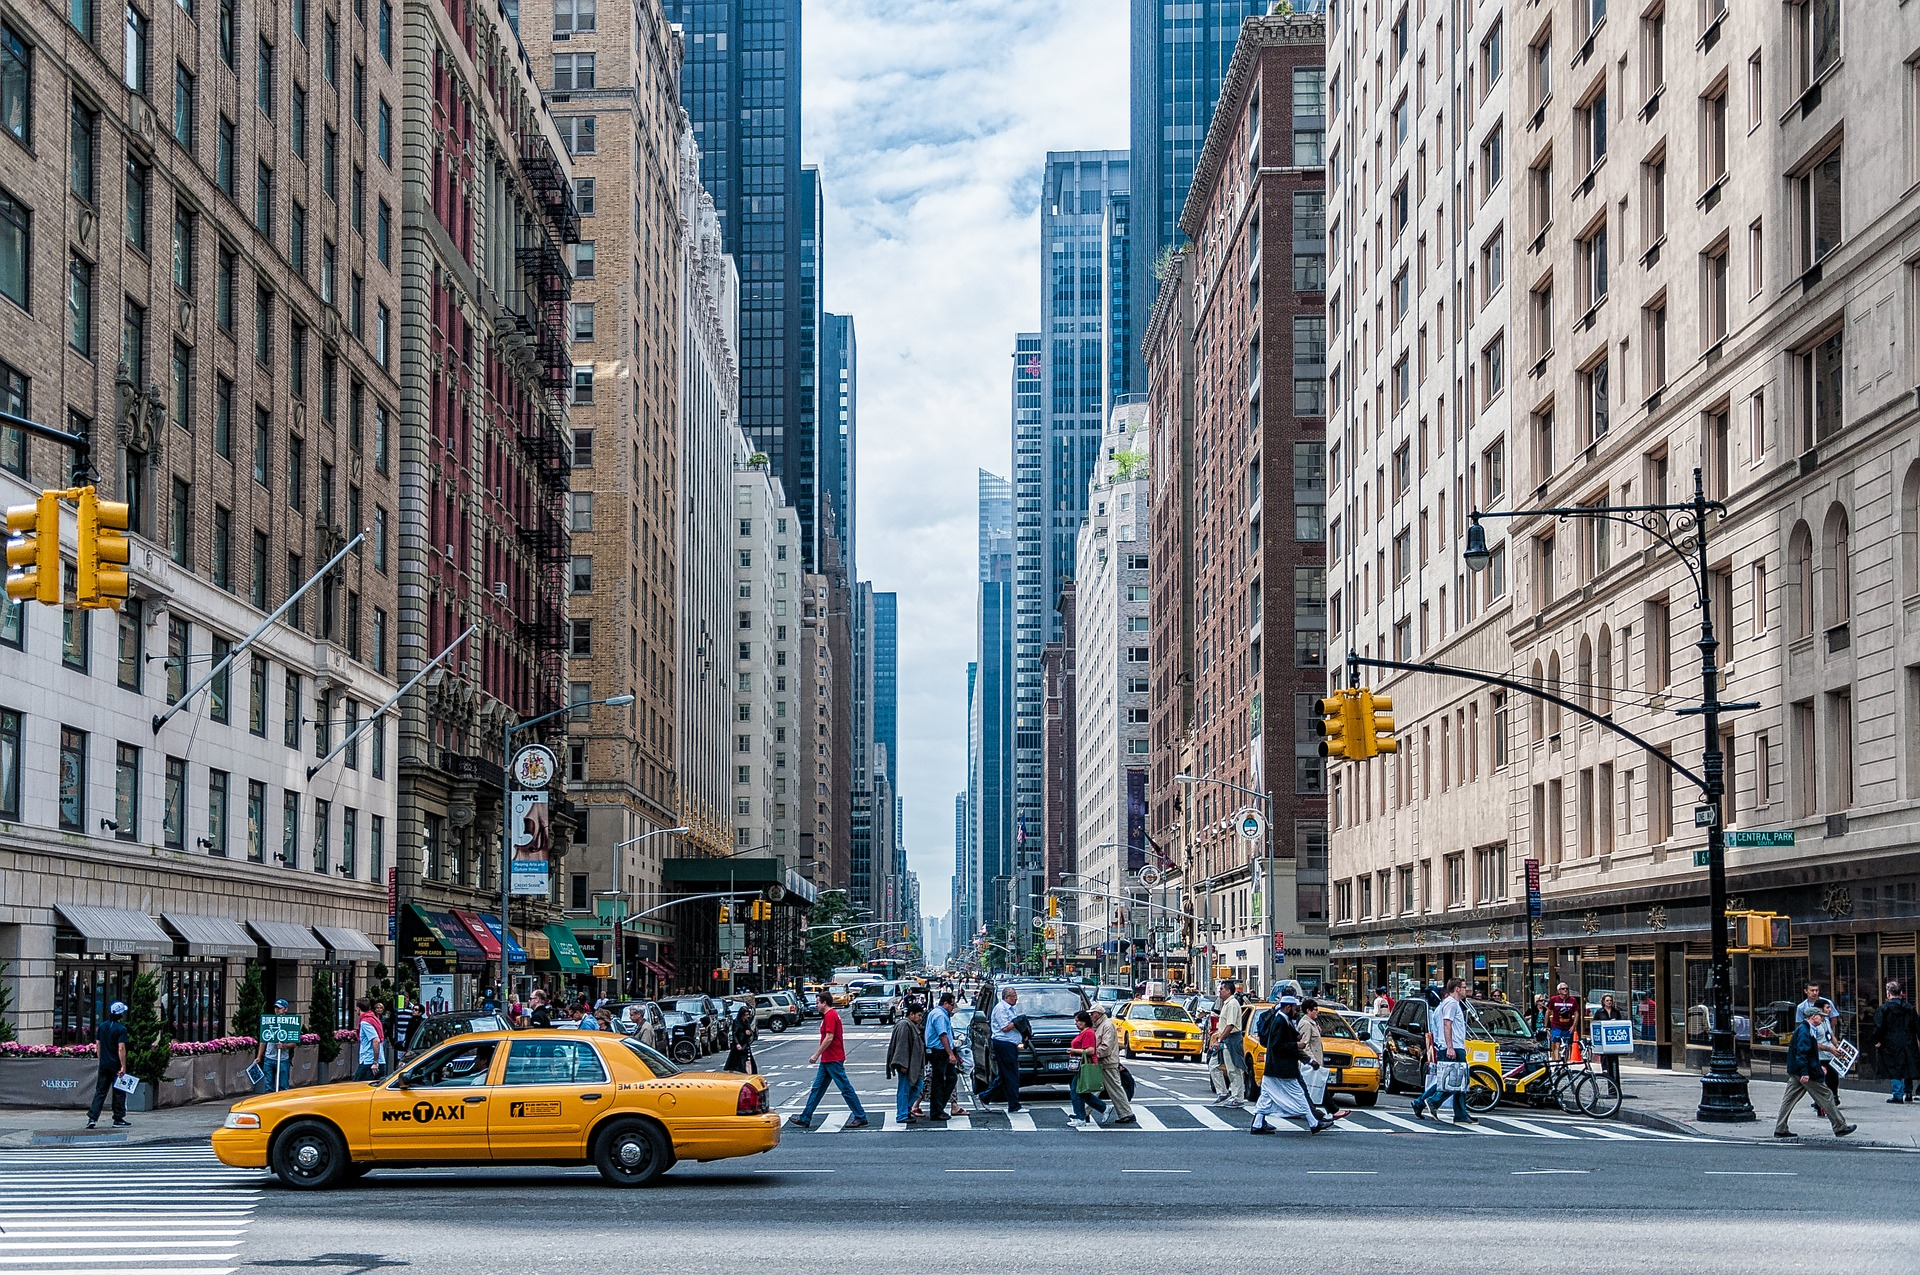 Photo of a street in New York. A yellow taxi cab in the foreground, people crossing the street at a crossing, tall buildings to the left and right of the photo.